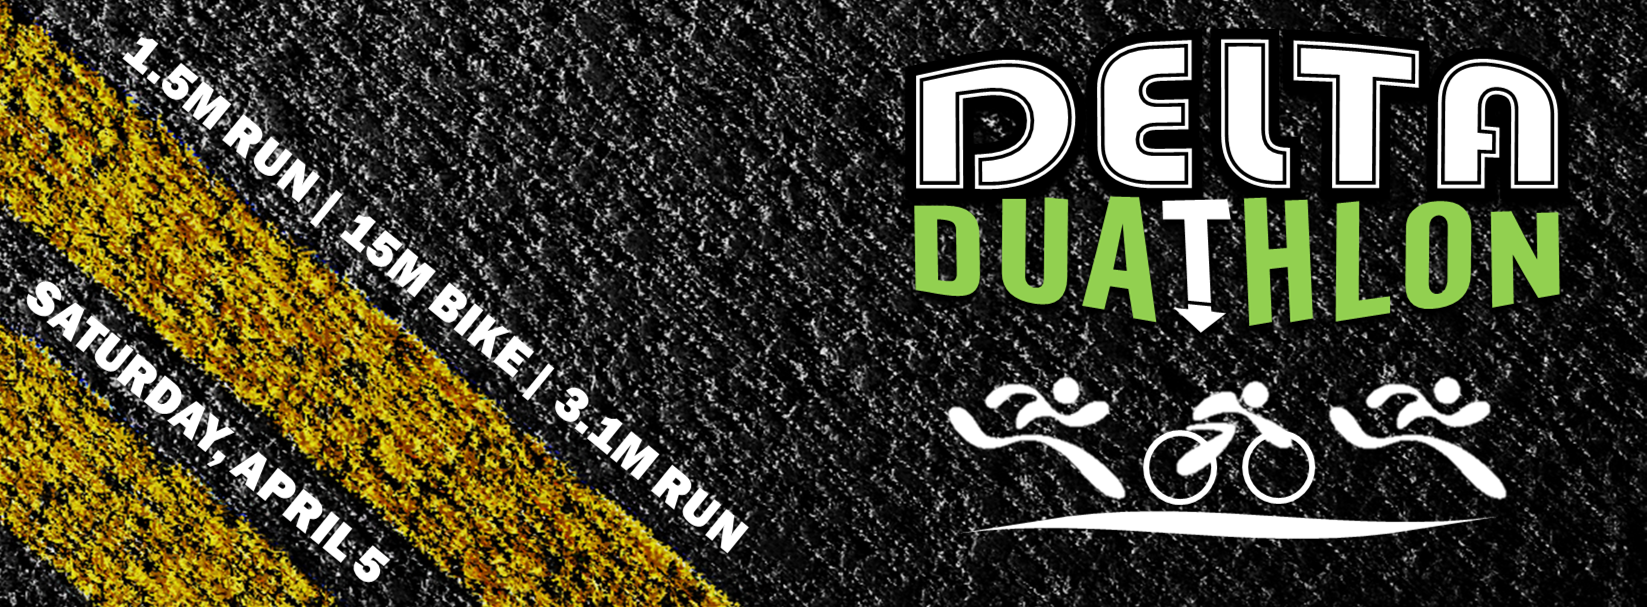 Duathlon Header